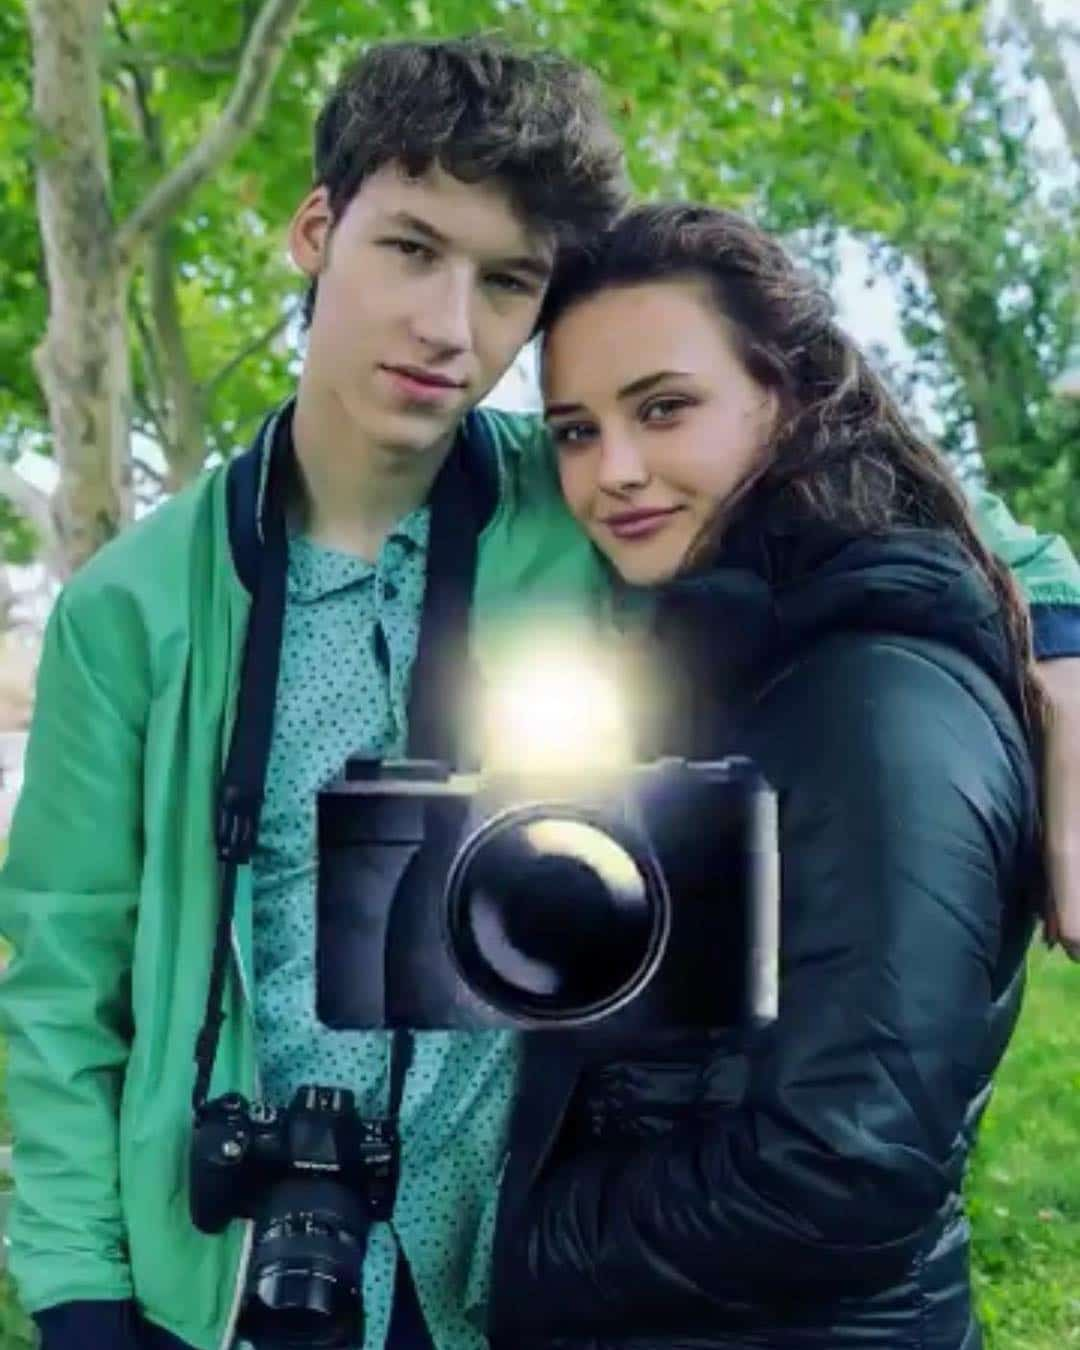 devin druid with hannah baker